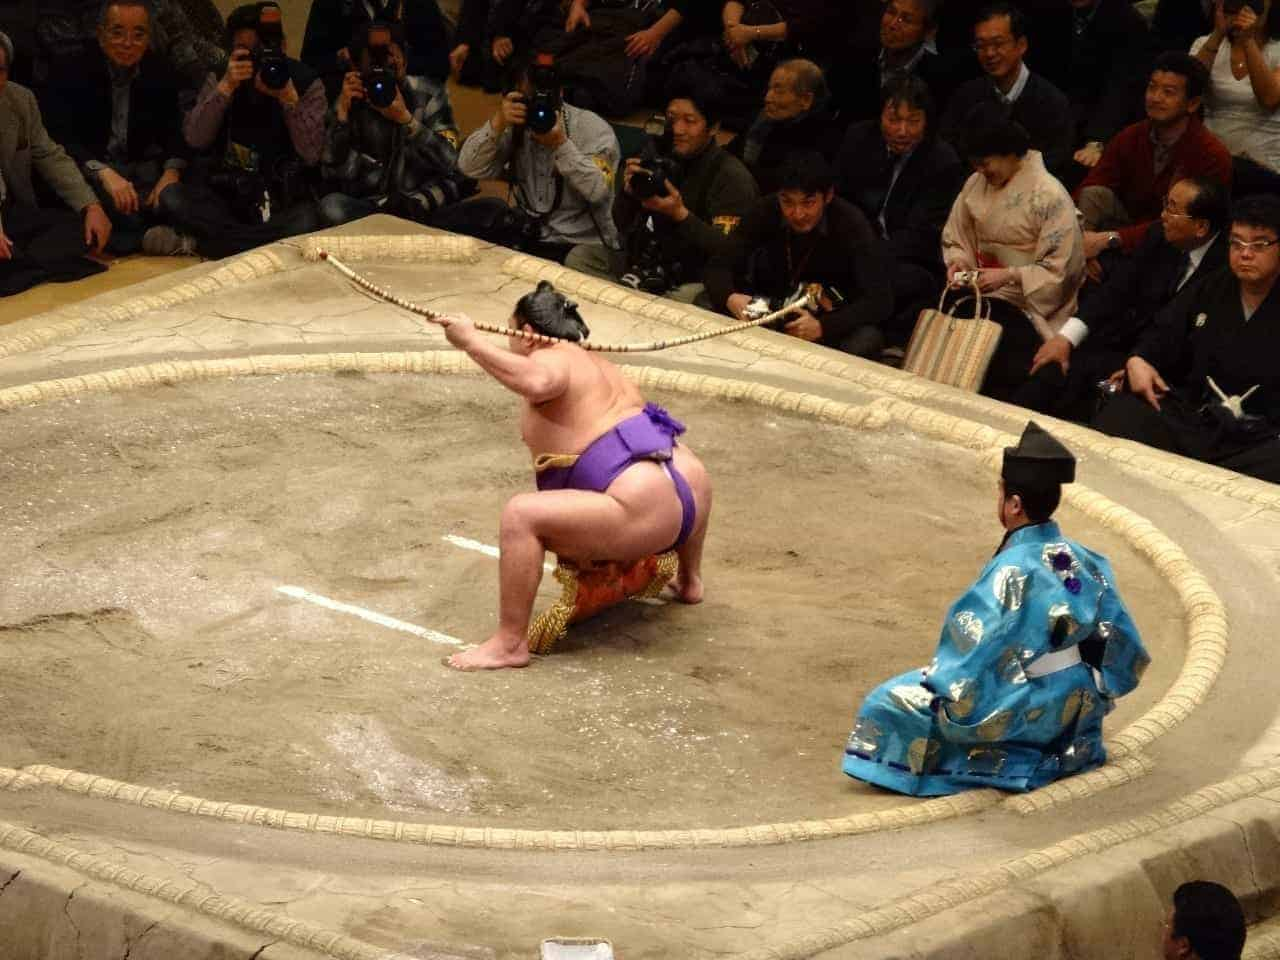 rituals of sumo tournaments are very important